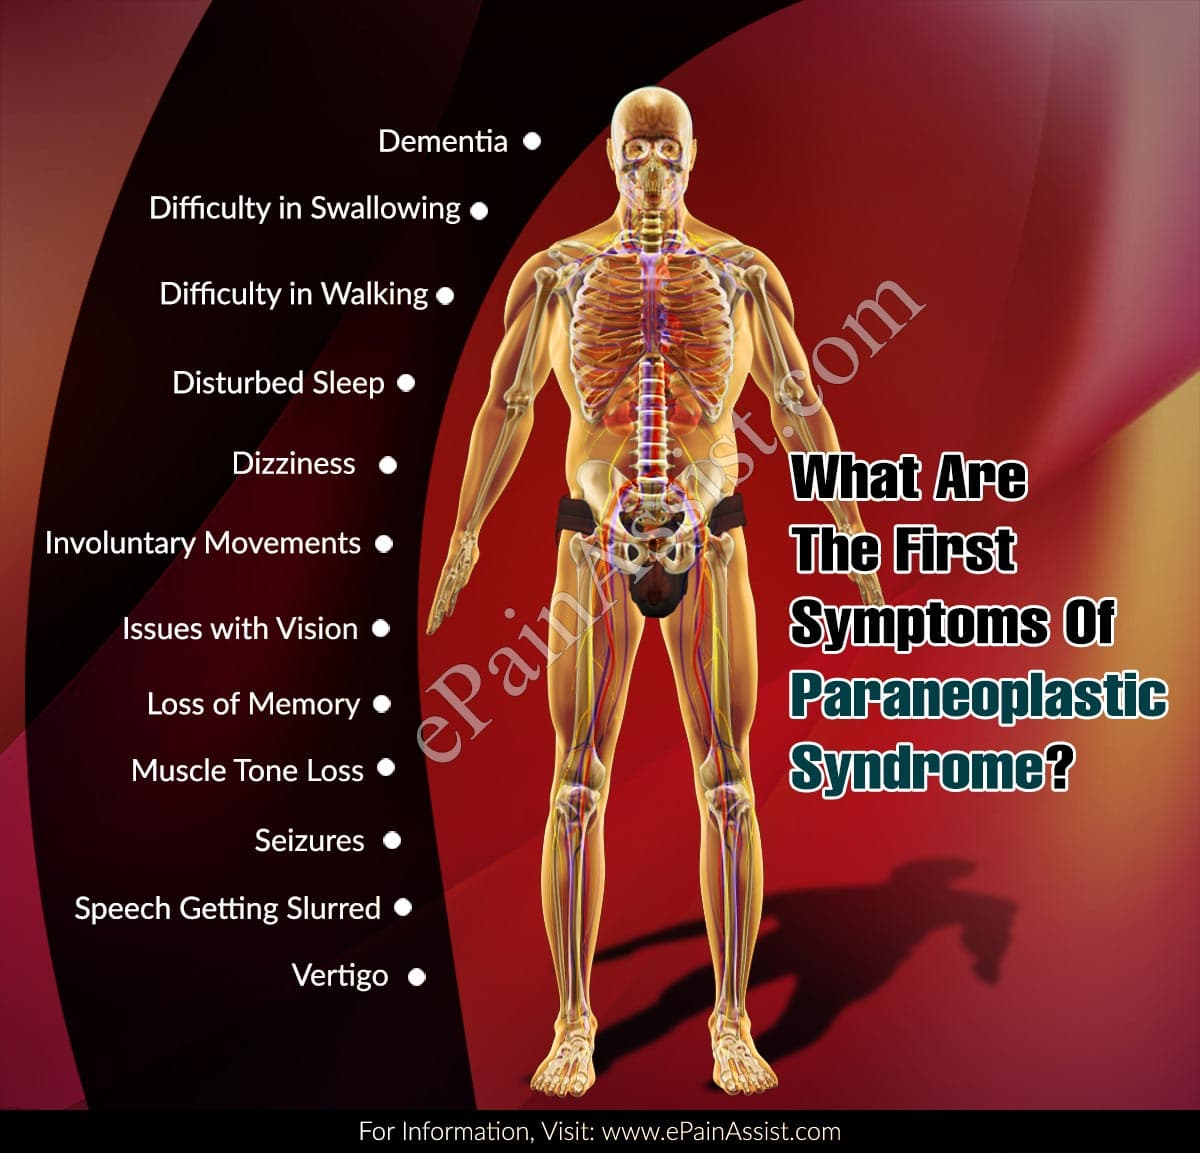 What Are The First Symptoms Of Paraneoplastic Syndrome?